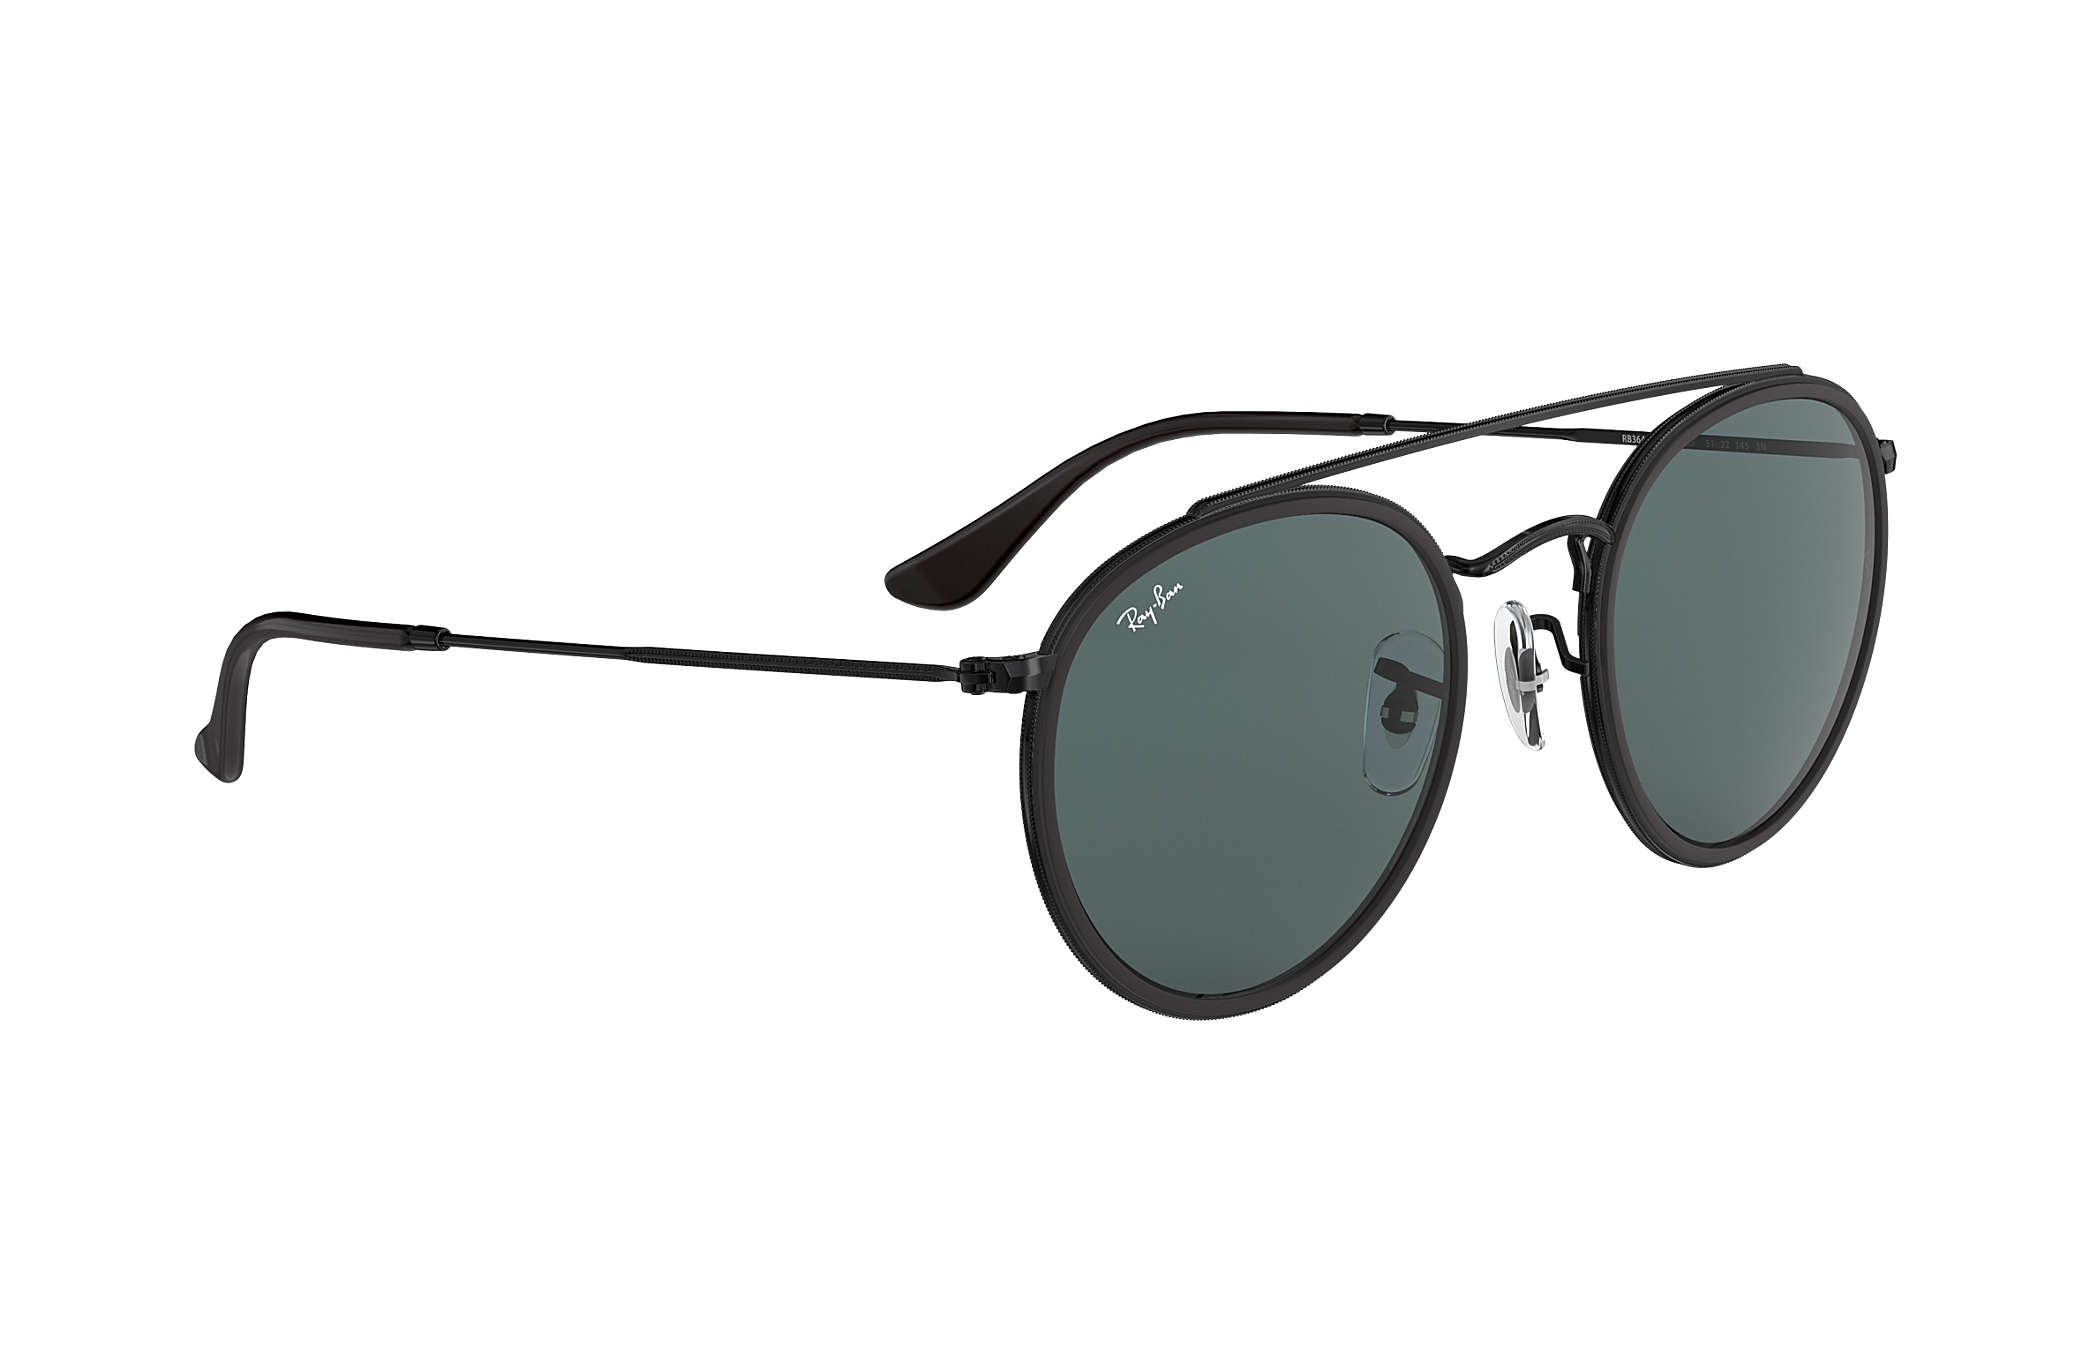 cceed4c900745 Ray-Ban Round Double Bridge RB3647N Black - Metal - Blue Gray Lenses ...